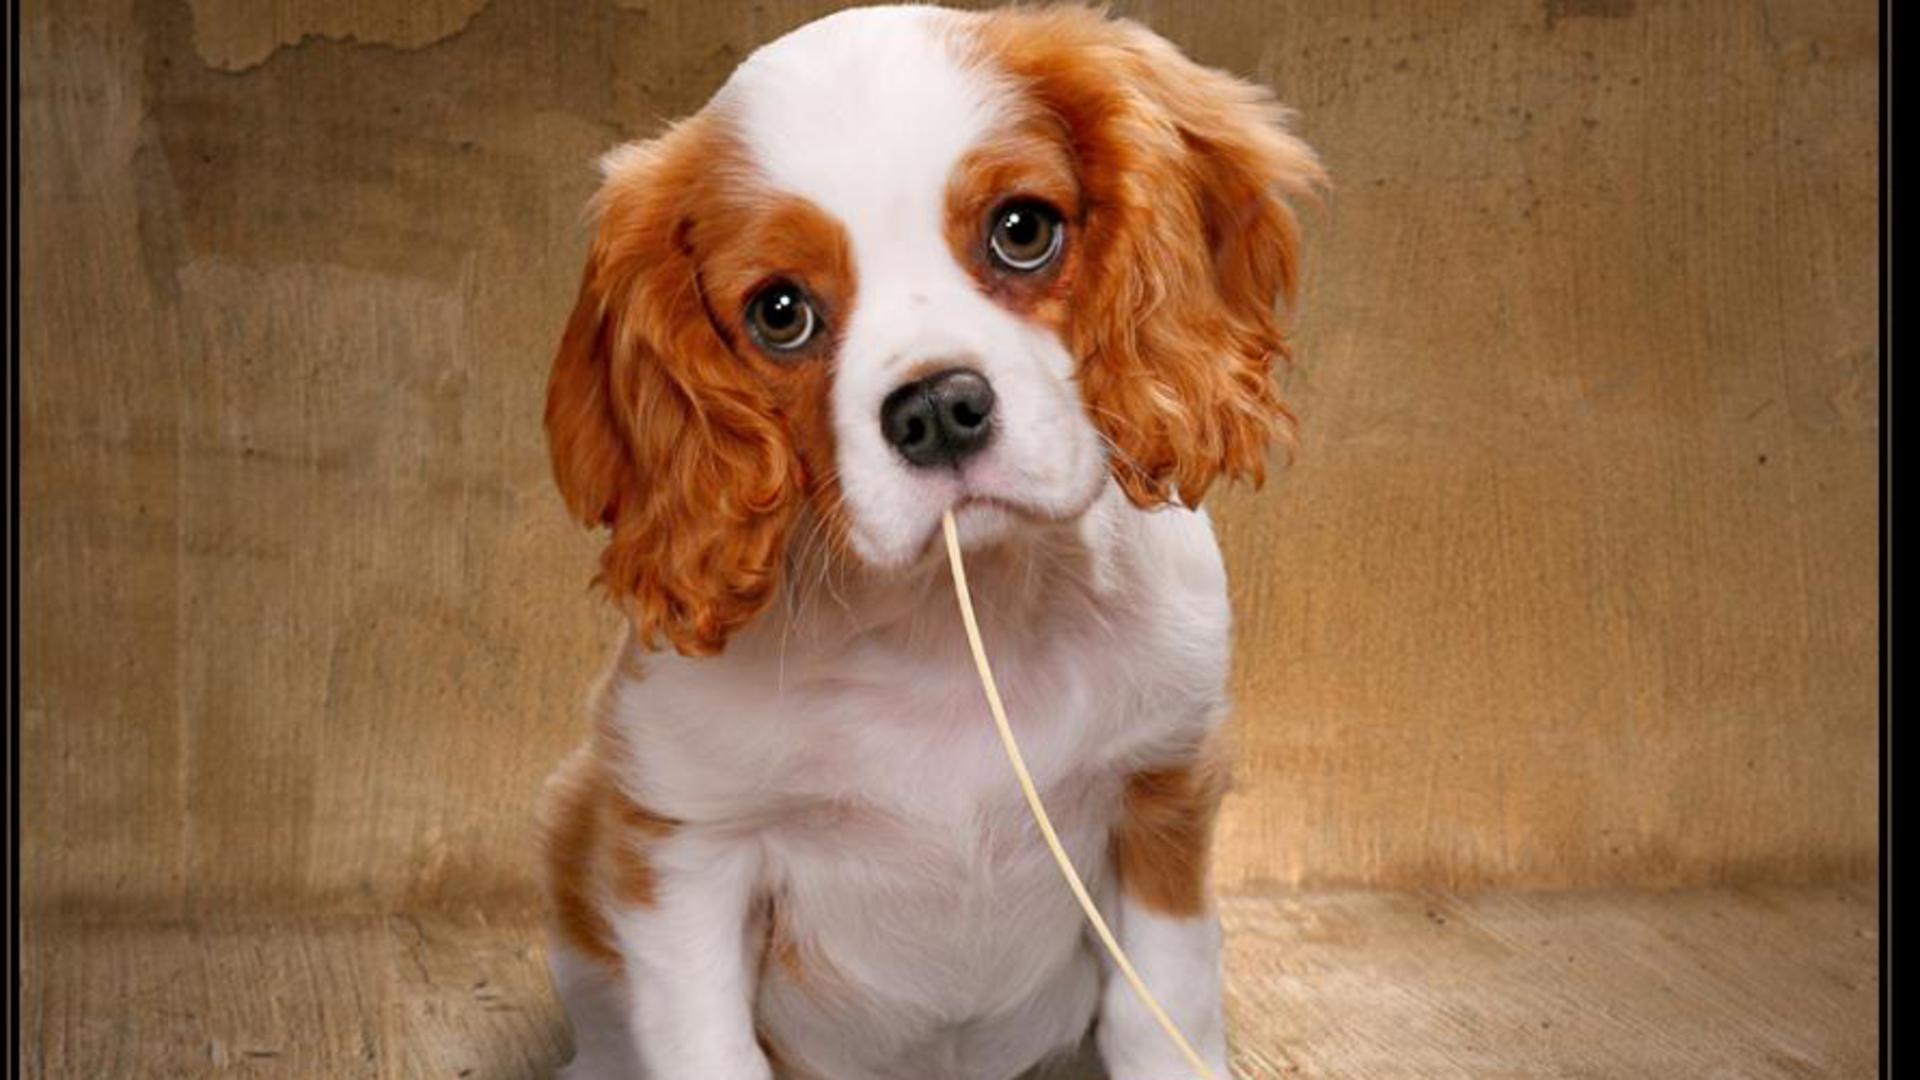 Cute Puppies Wallpaper 1080p Puppy Dog Eyes Wallpaper Animals Wallpaper Better